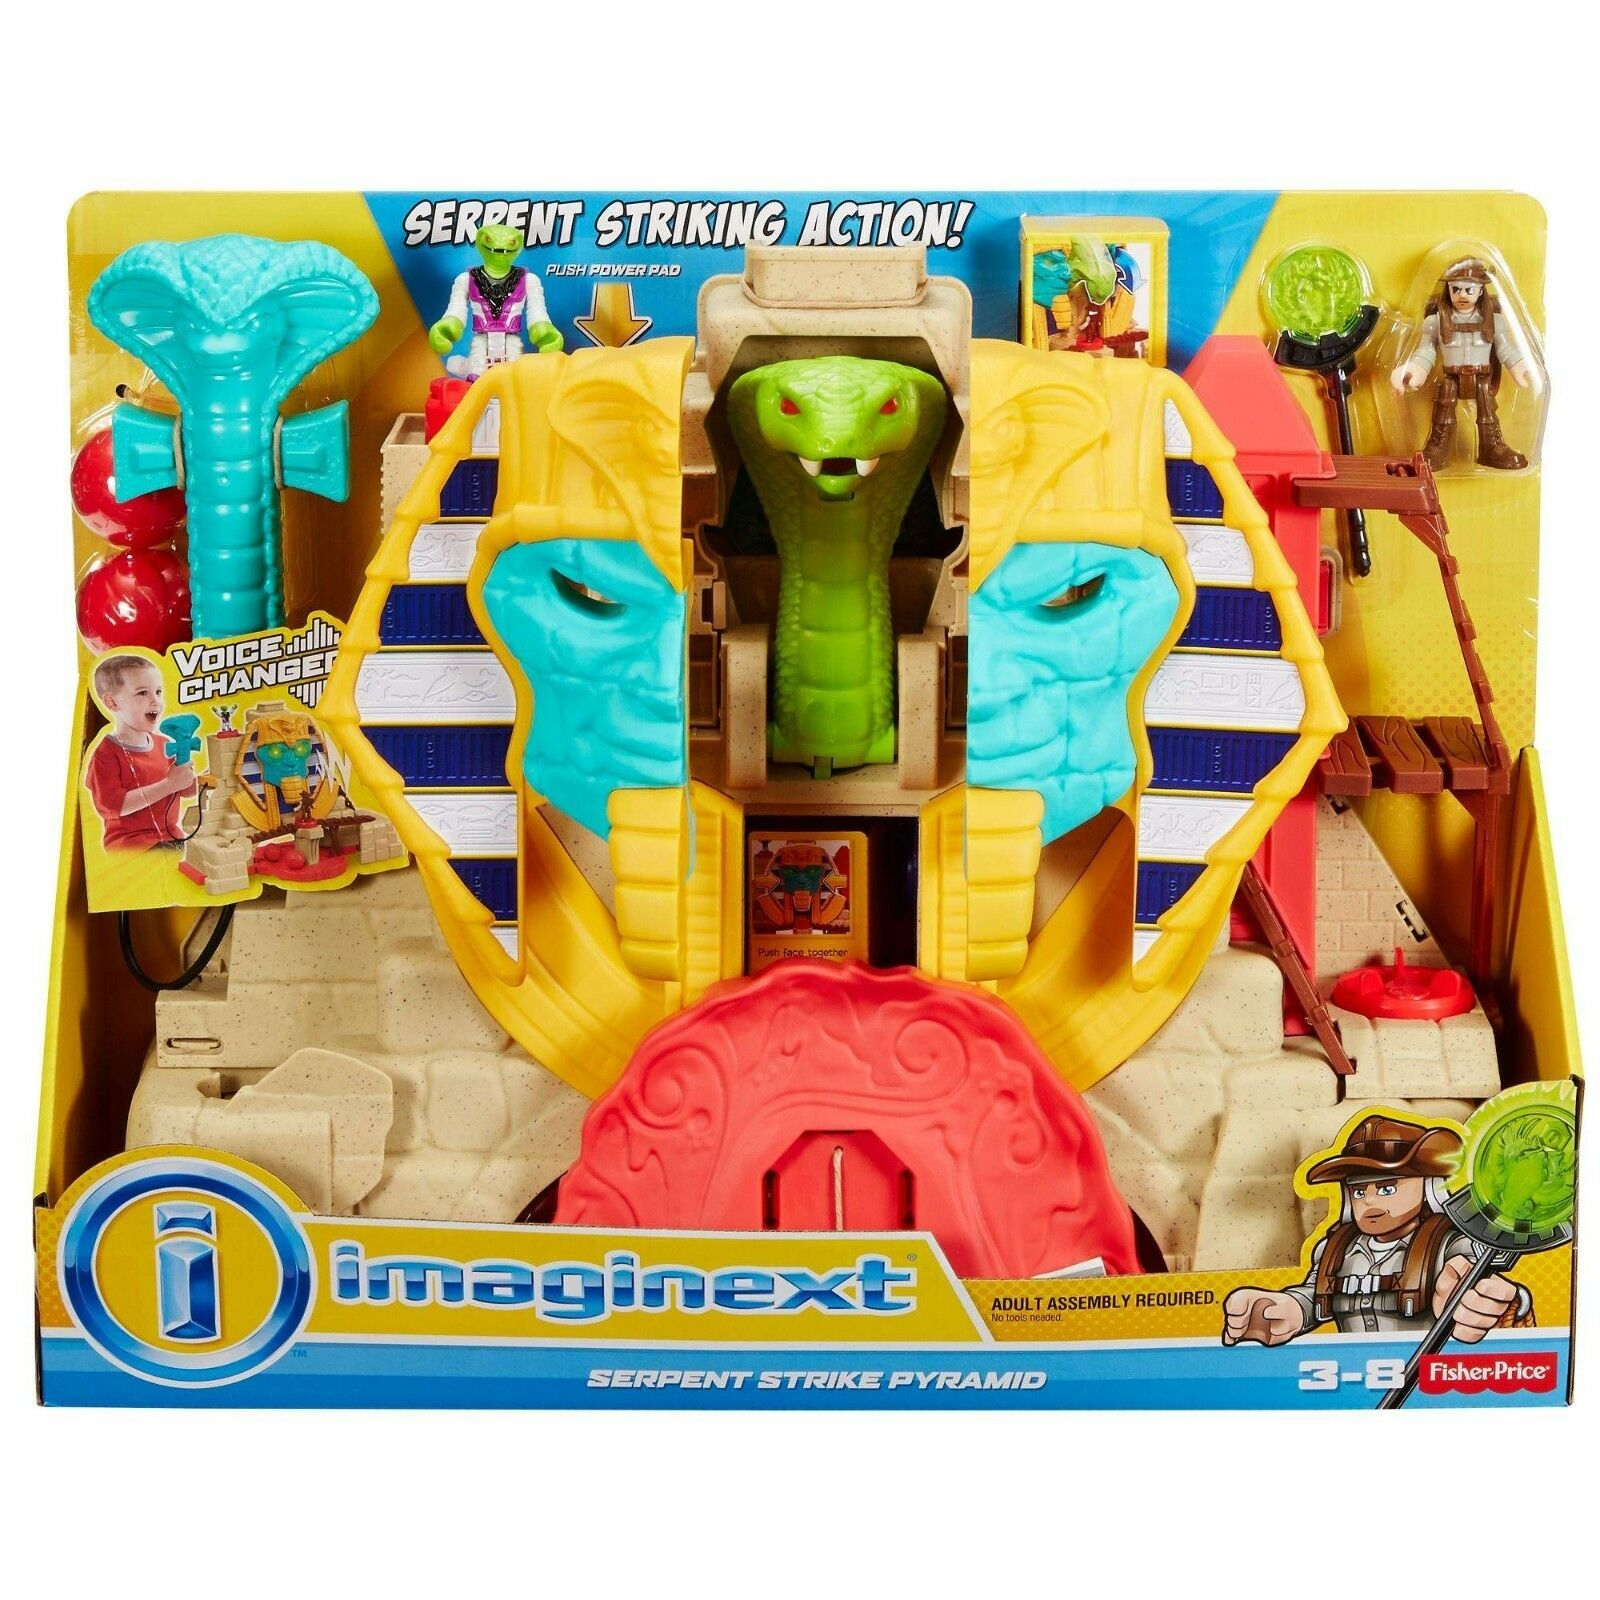 Fisher-Price Imaginext Mummy Serpent Strike Pyramid Set with Voice Changer